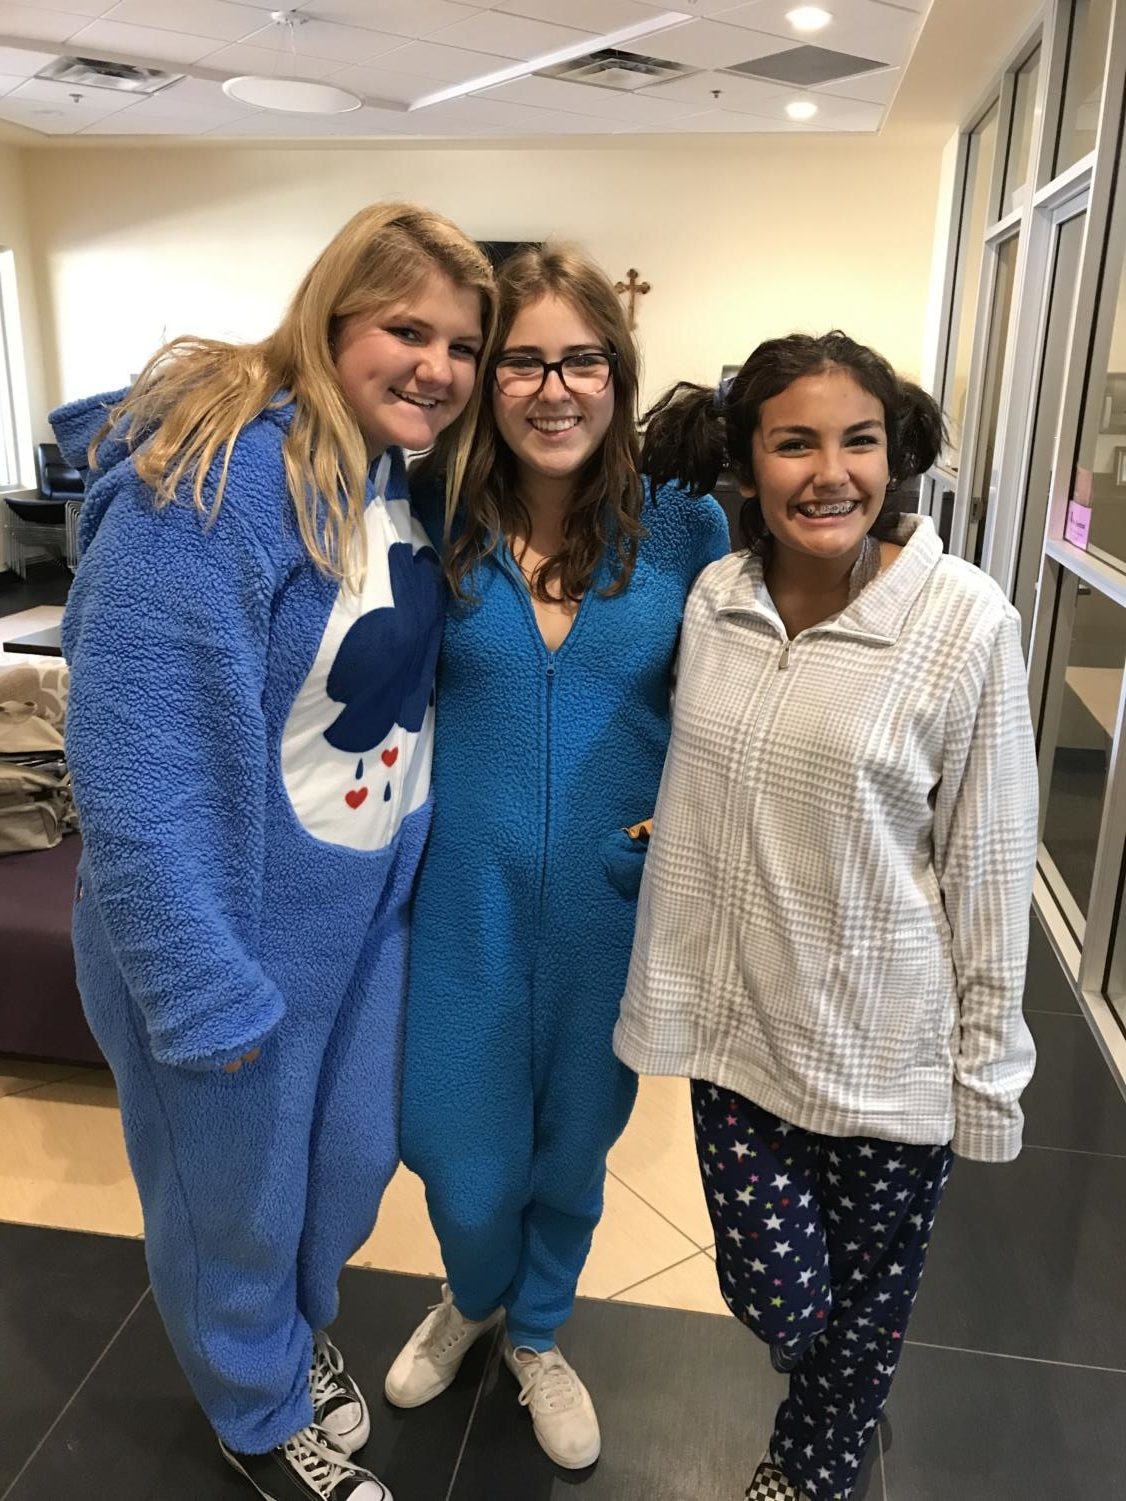 Freshmen Hayley White, Macy Brennan, and Juju Montes in their costumes (Samantha Torre/The Seraphim).